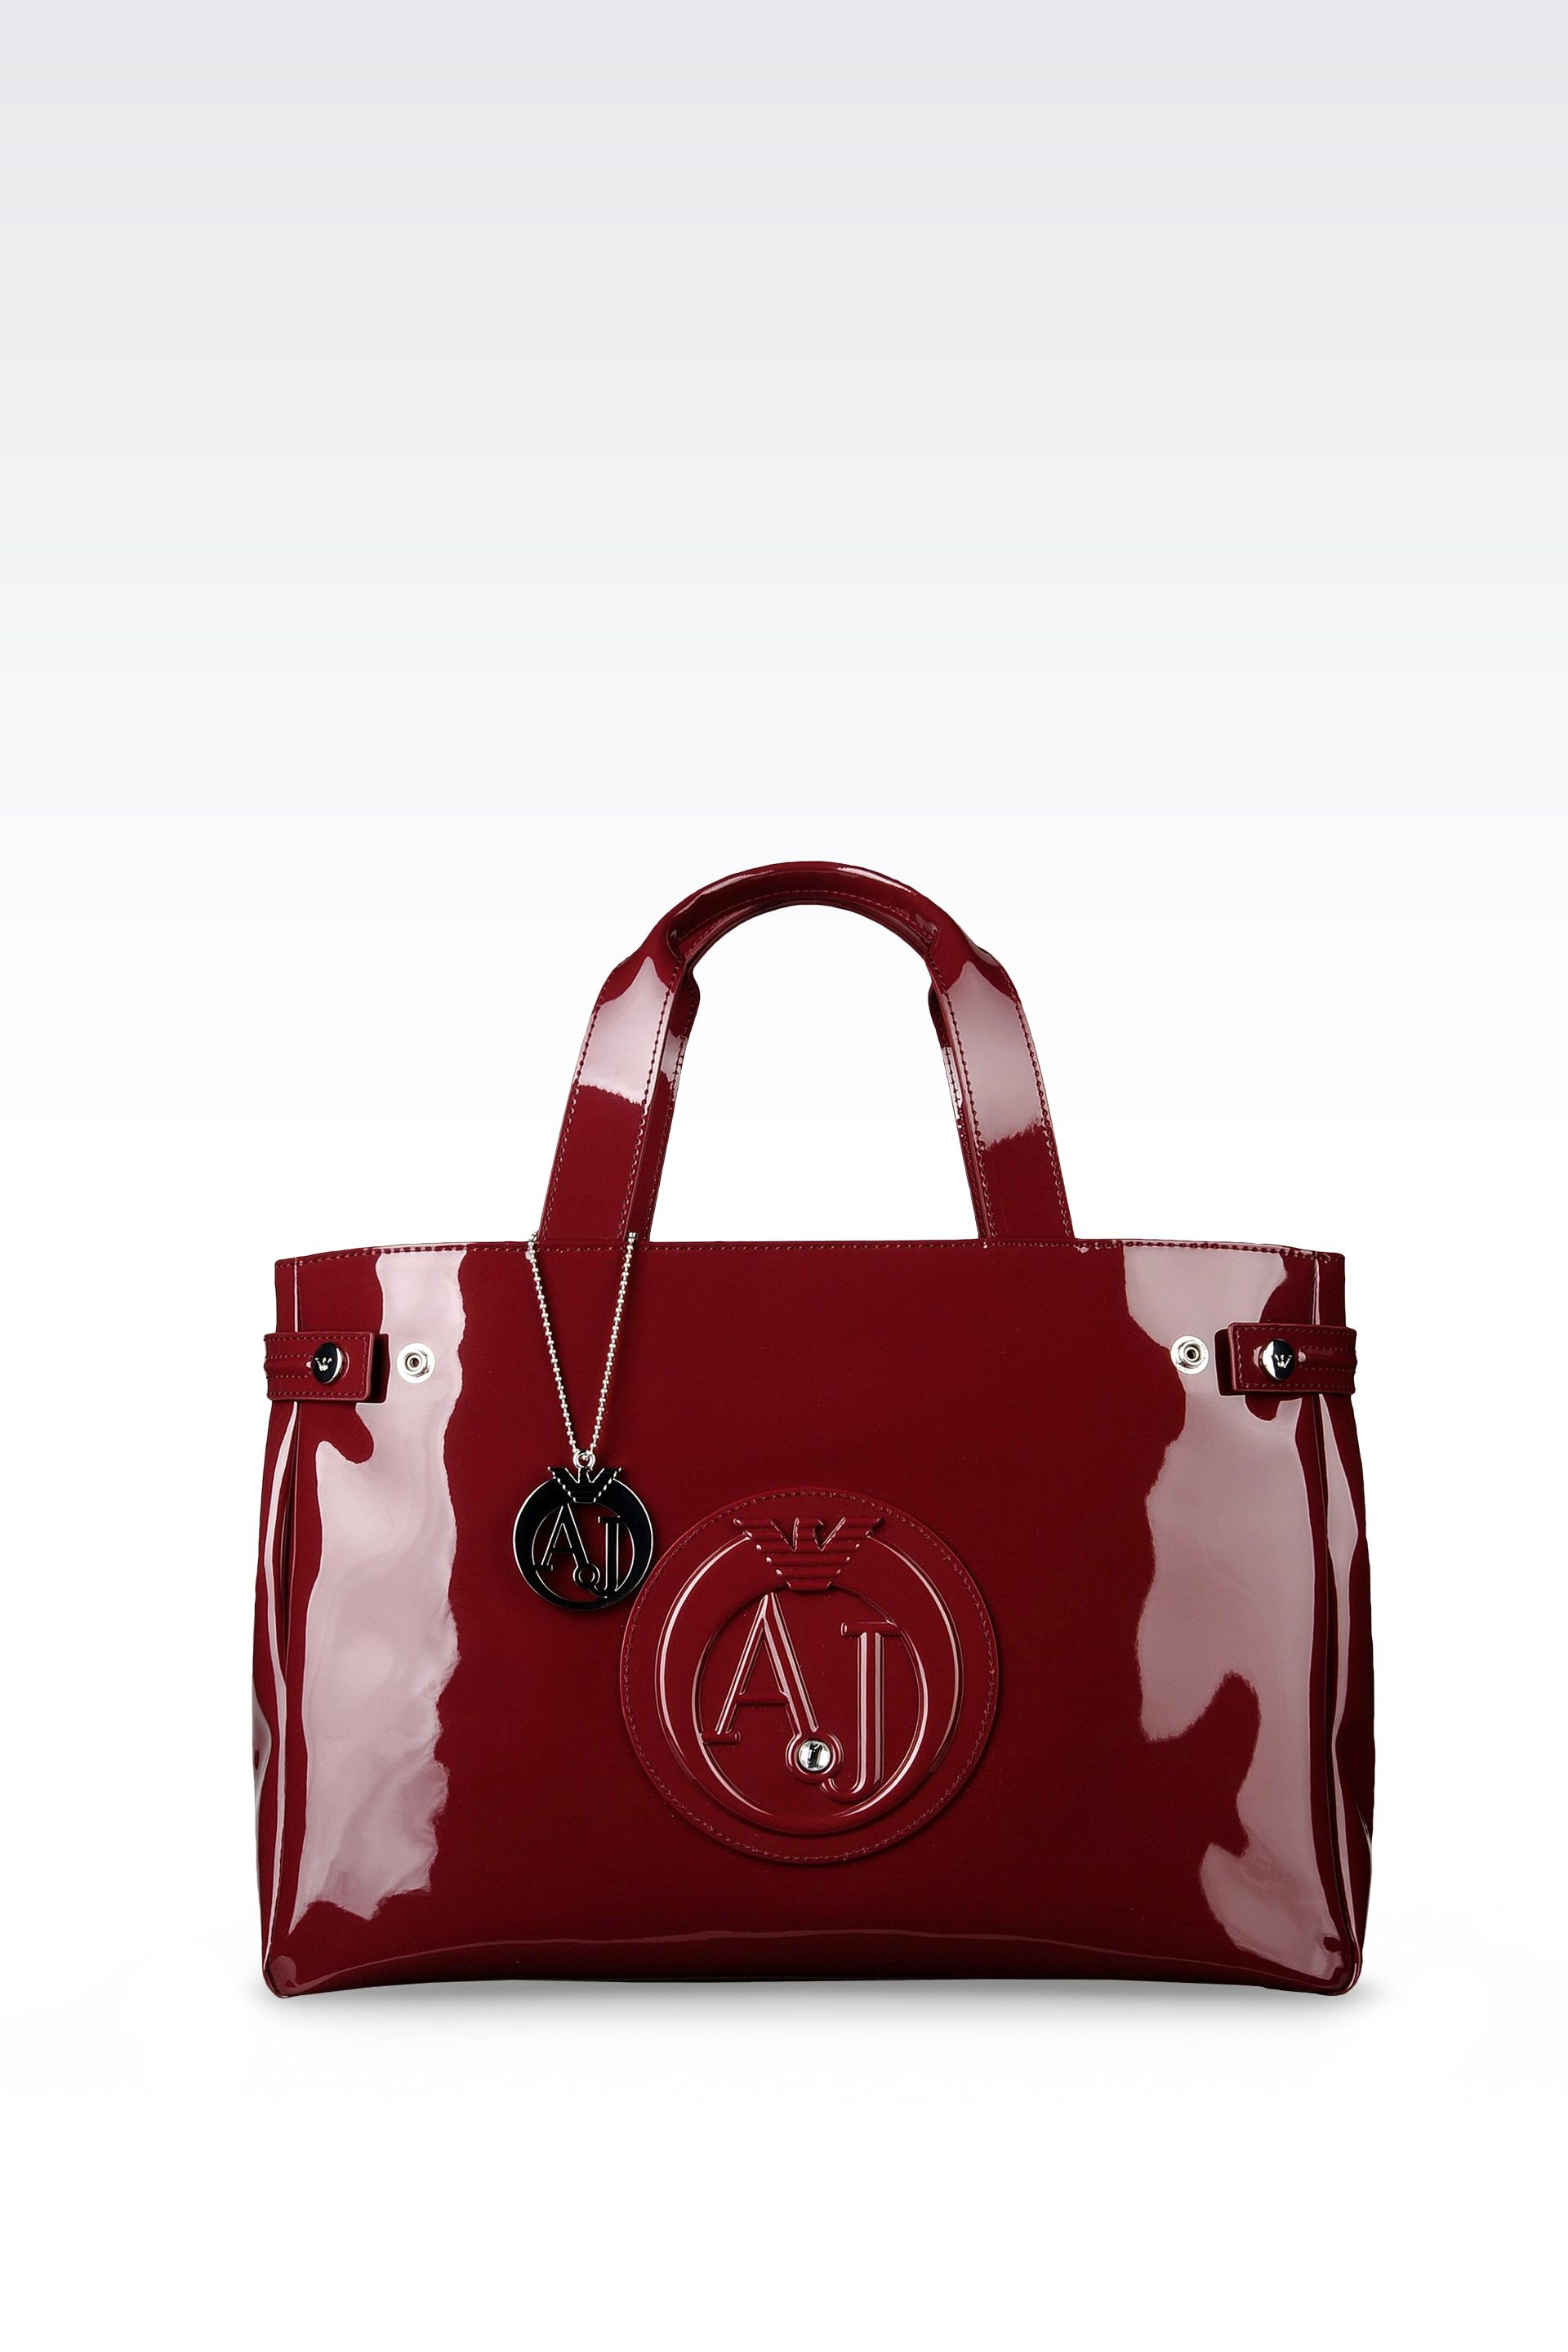 Armani Jeans Shopping Bag in